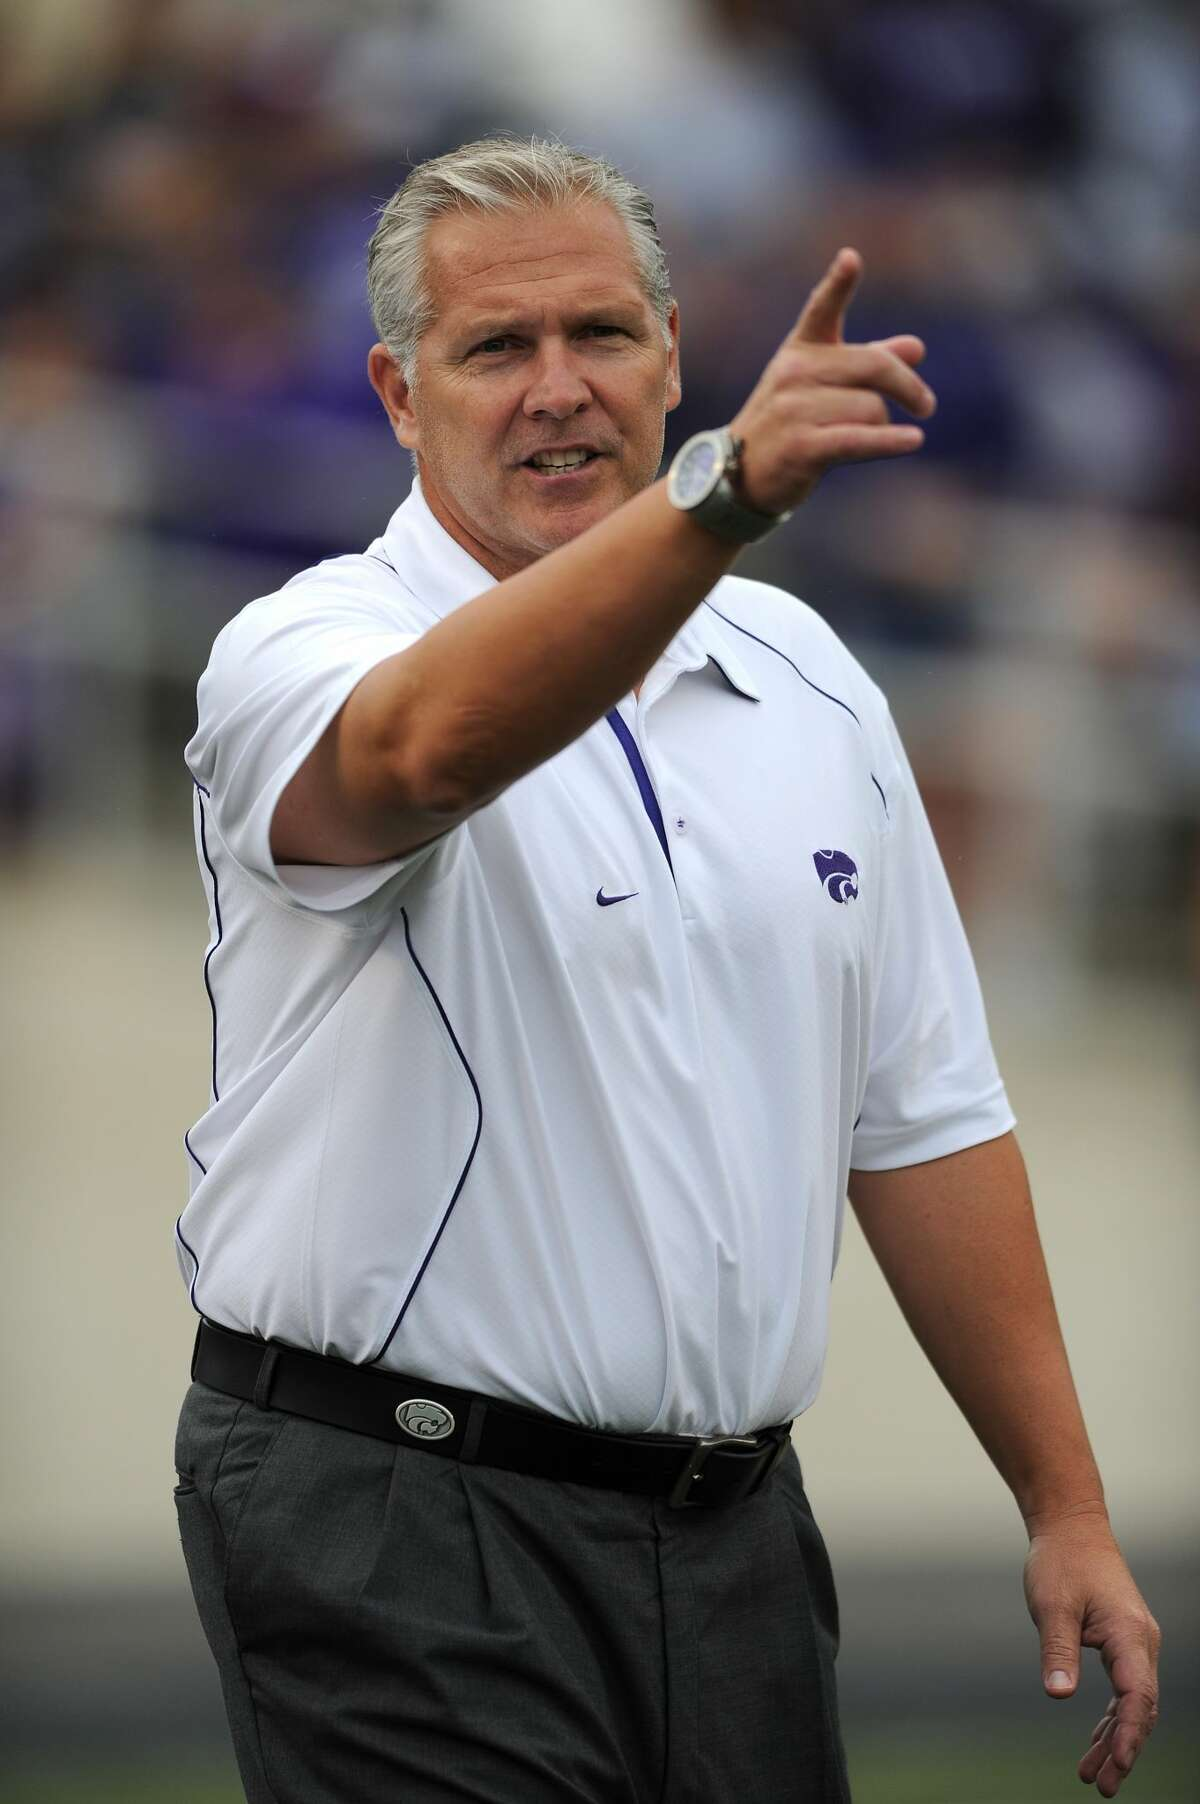 MANHATTAN, KS - SEPTEMBER 25: Offensive Coordinator Dana Dimel of the Kansas State Wildcats as seen during a game against the Central Florida Knights on September 25, 2010 at Bill Snyder Family Stadium in Manhattan, Kansas. Kansas State defeated Central Florida 17-13. (Photo by Peter G. Aiken/Getty Images)